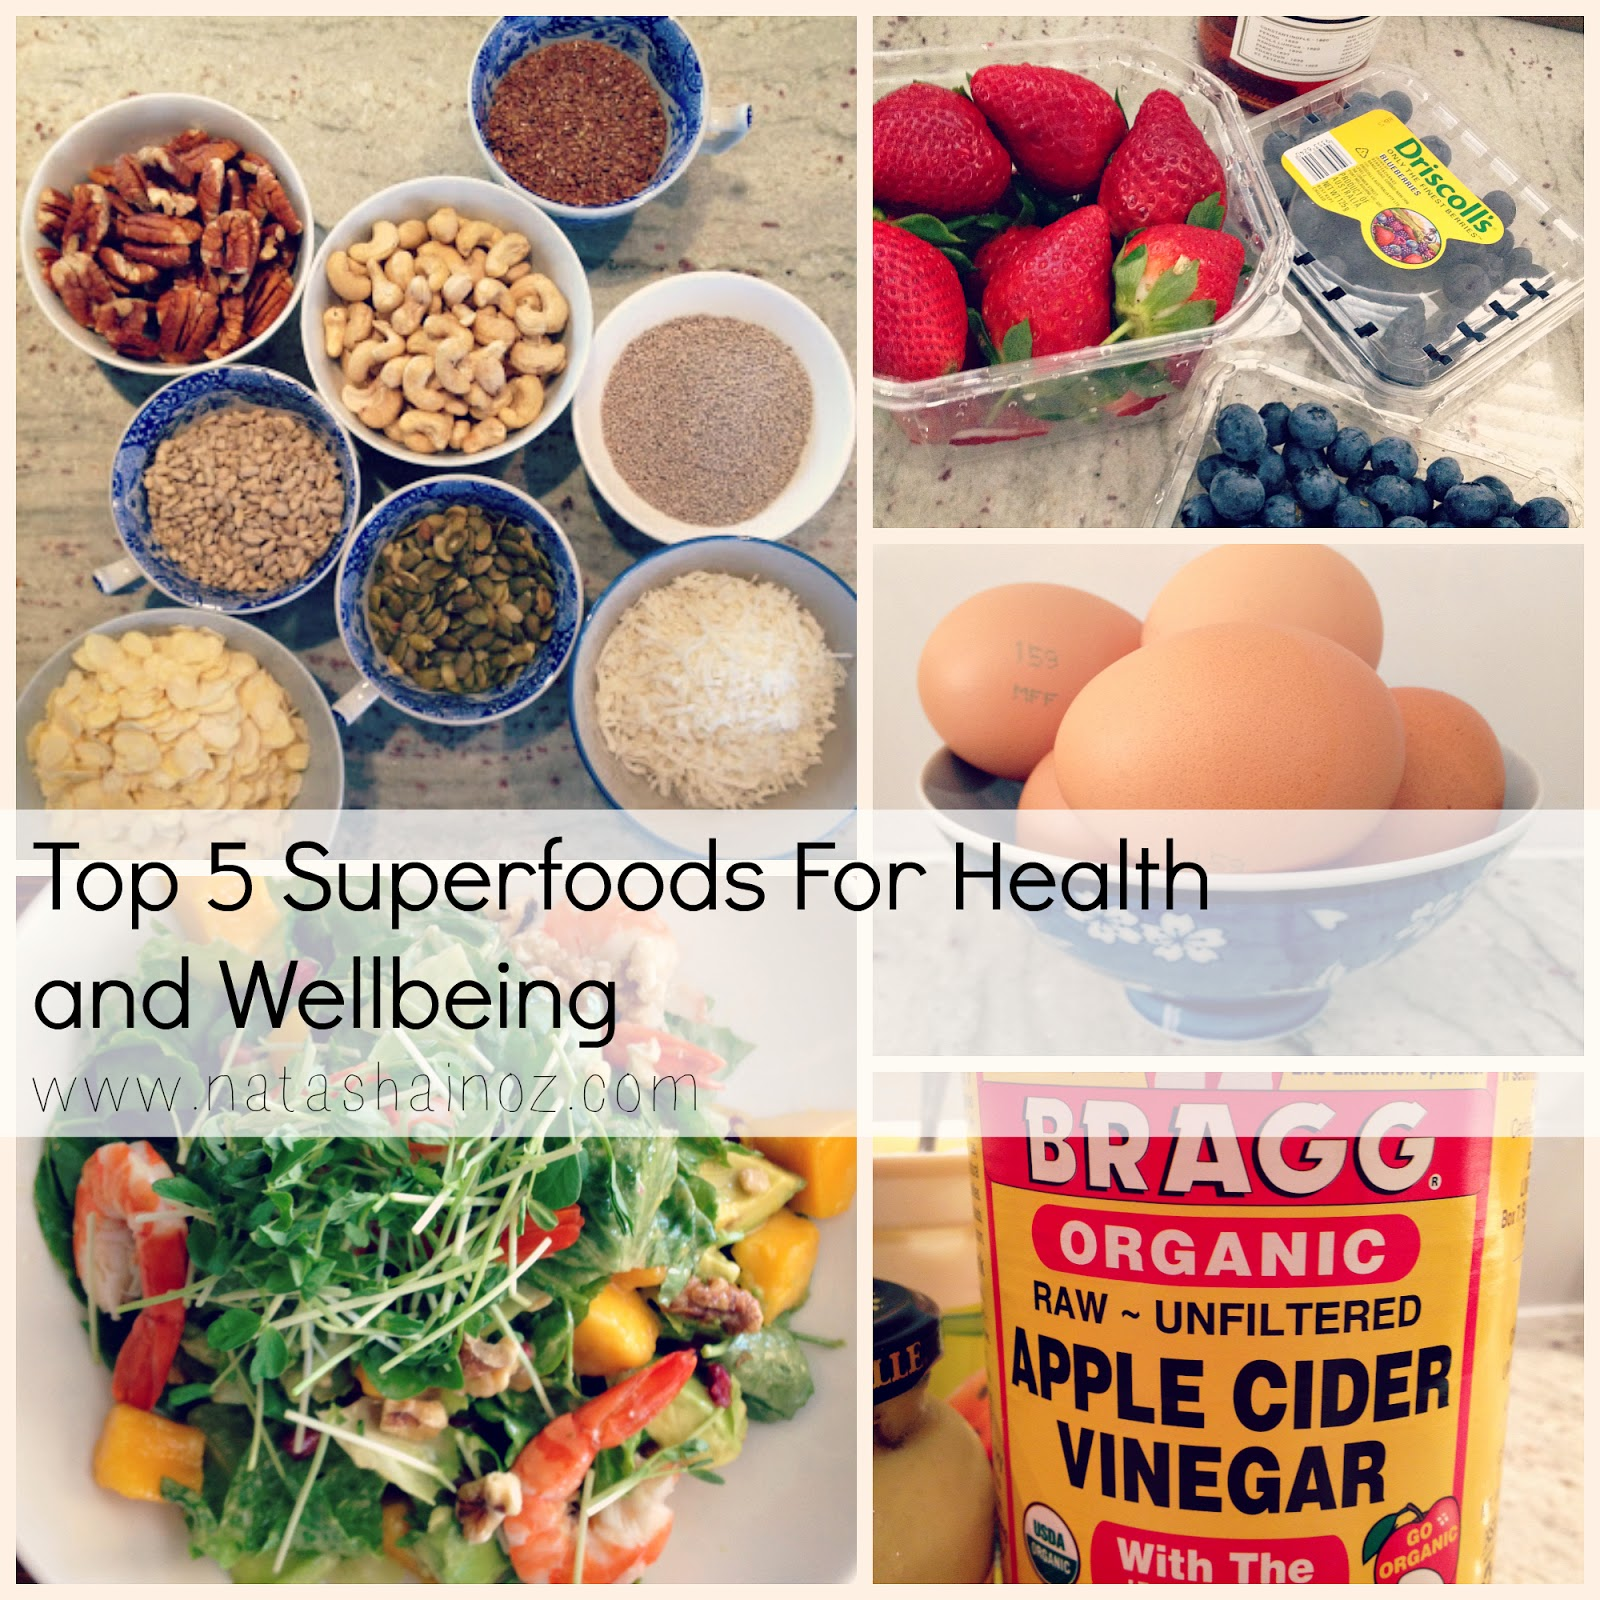 Top 5 Superfoods For Health and Wellbeing